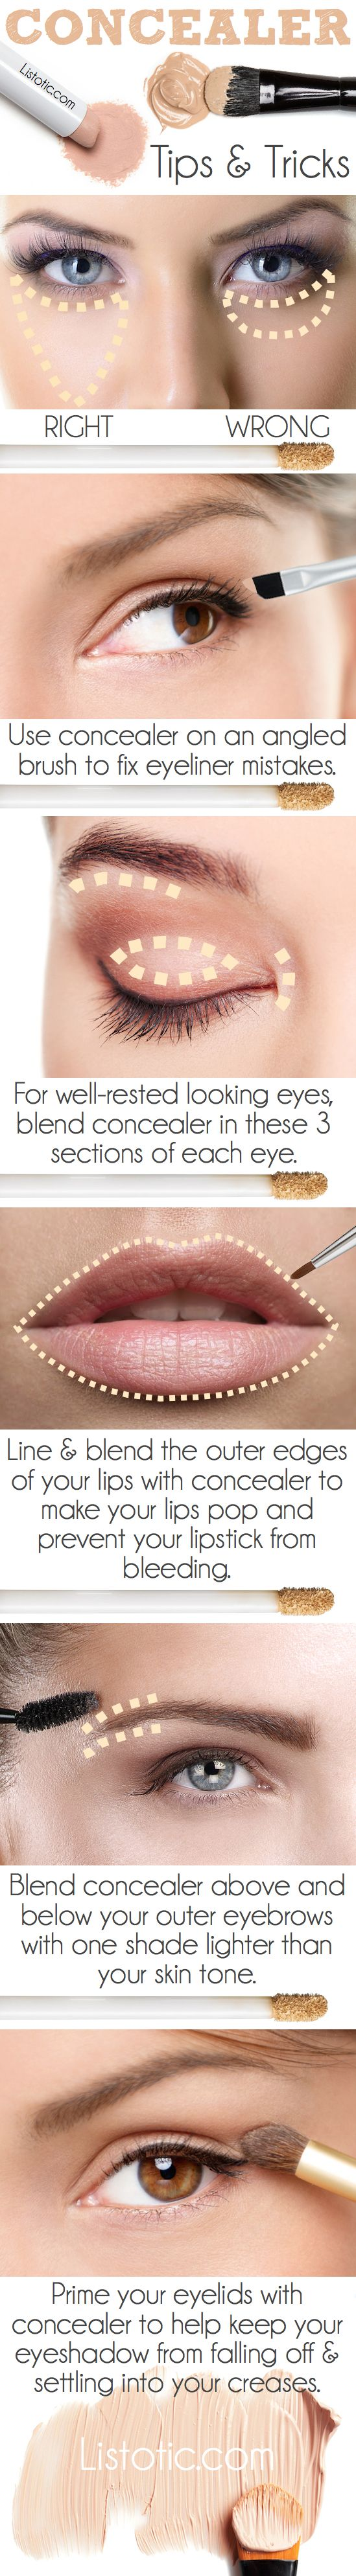 Love these concealer tips and tricks!